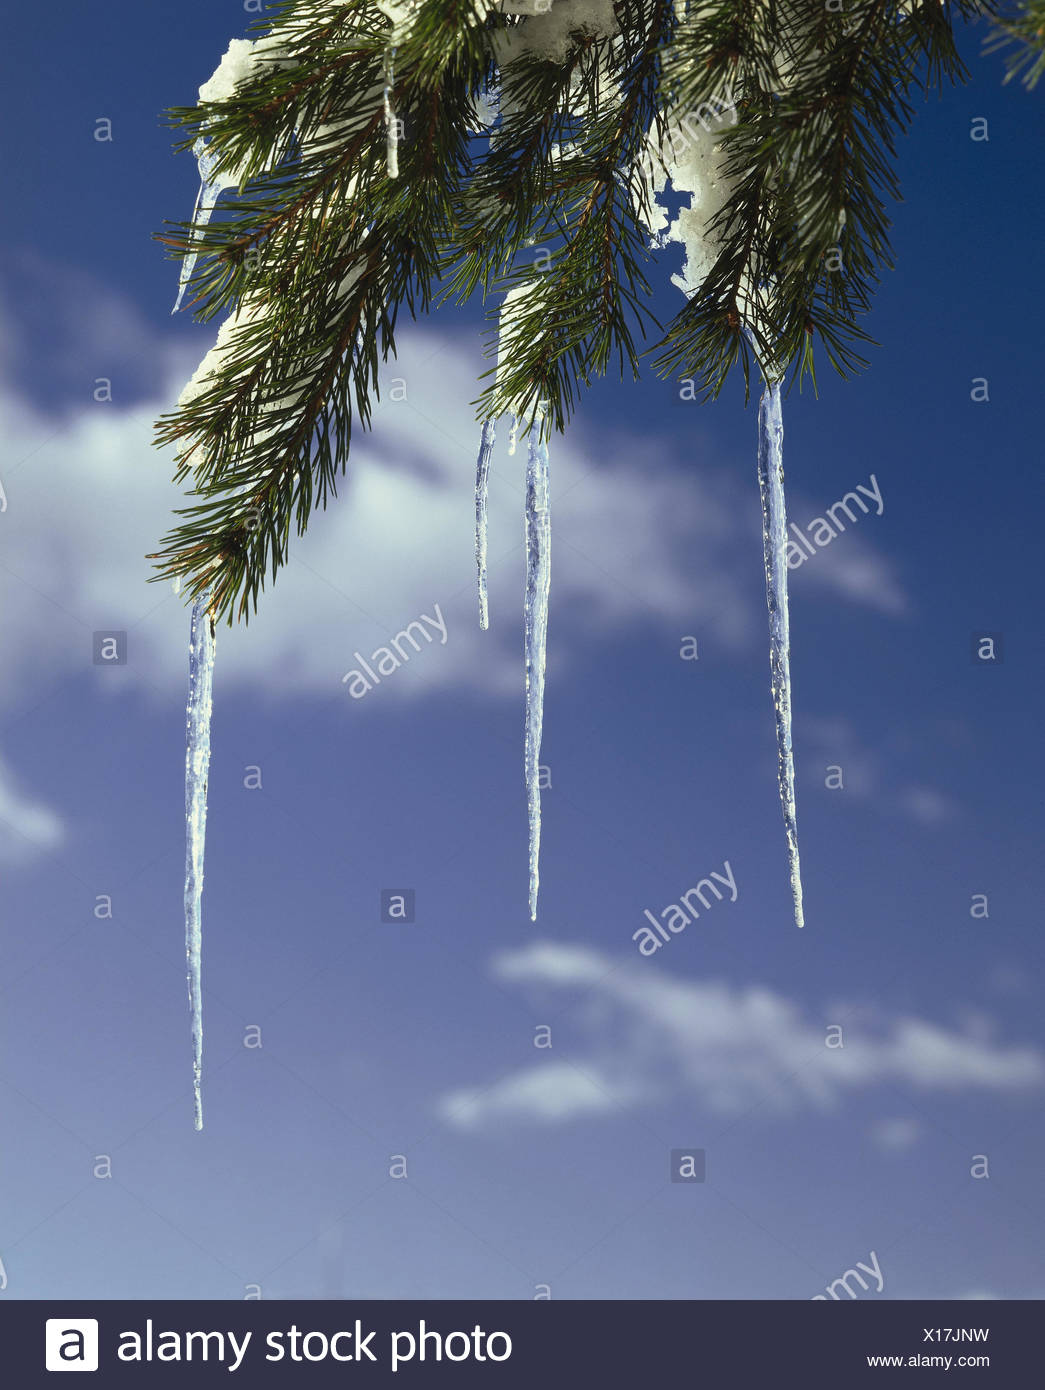 Conifer, detail, - branch, icicle - Stock Image